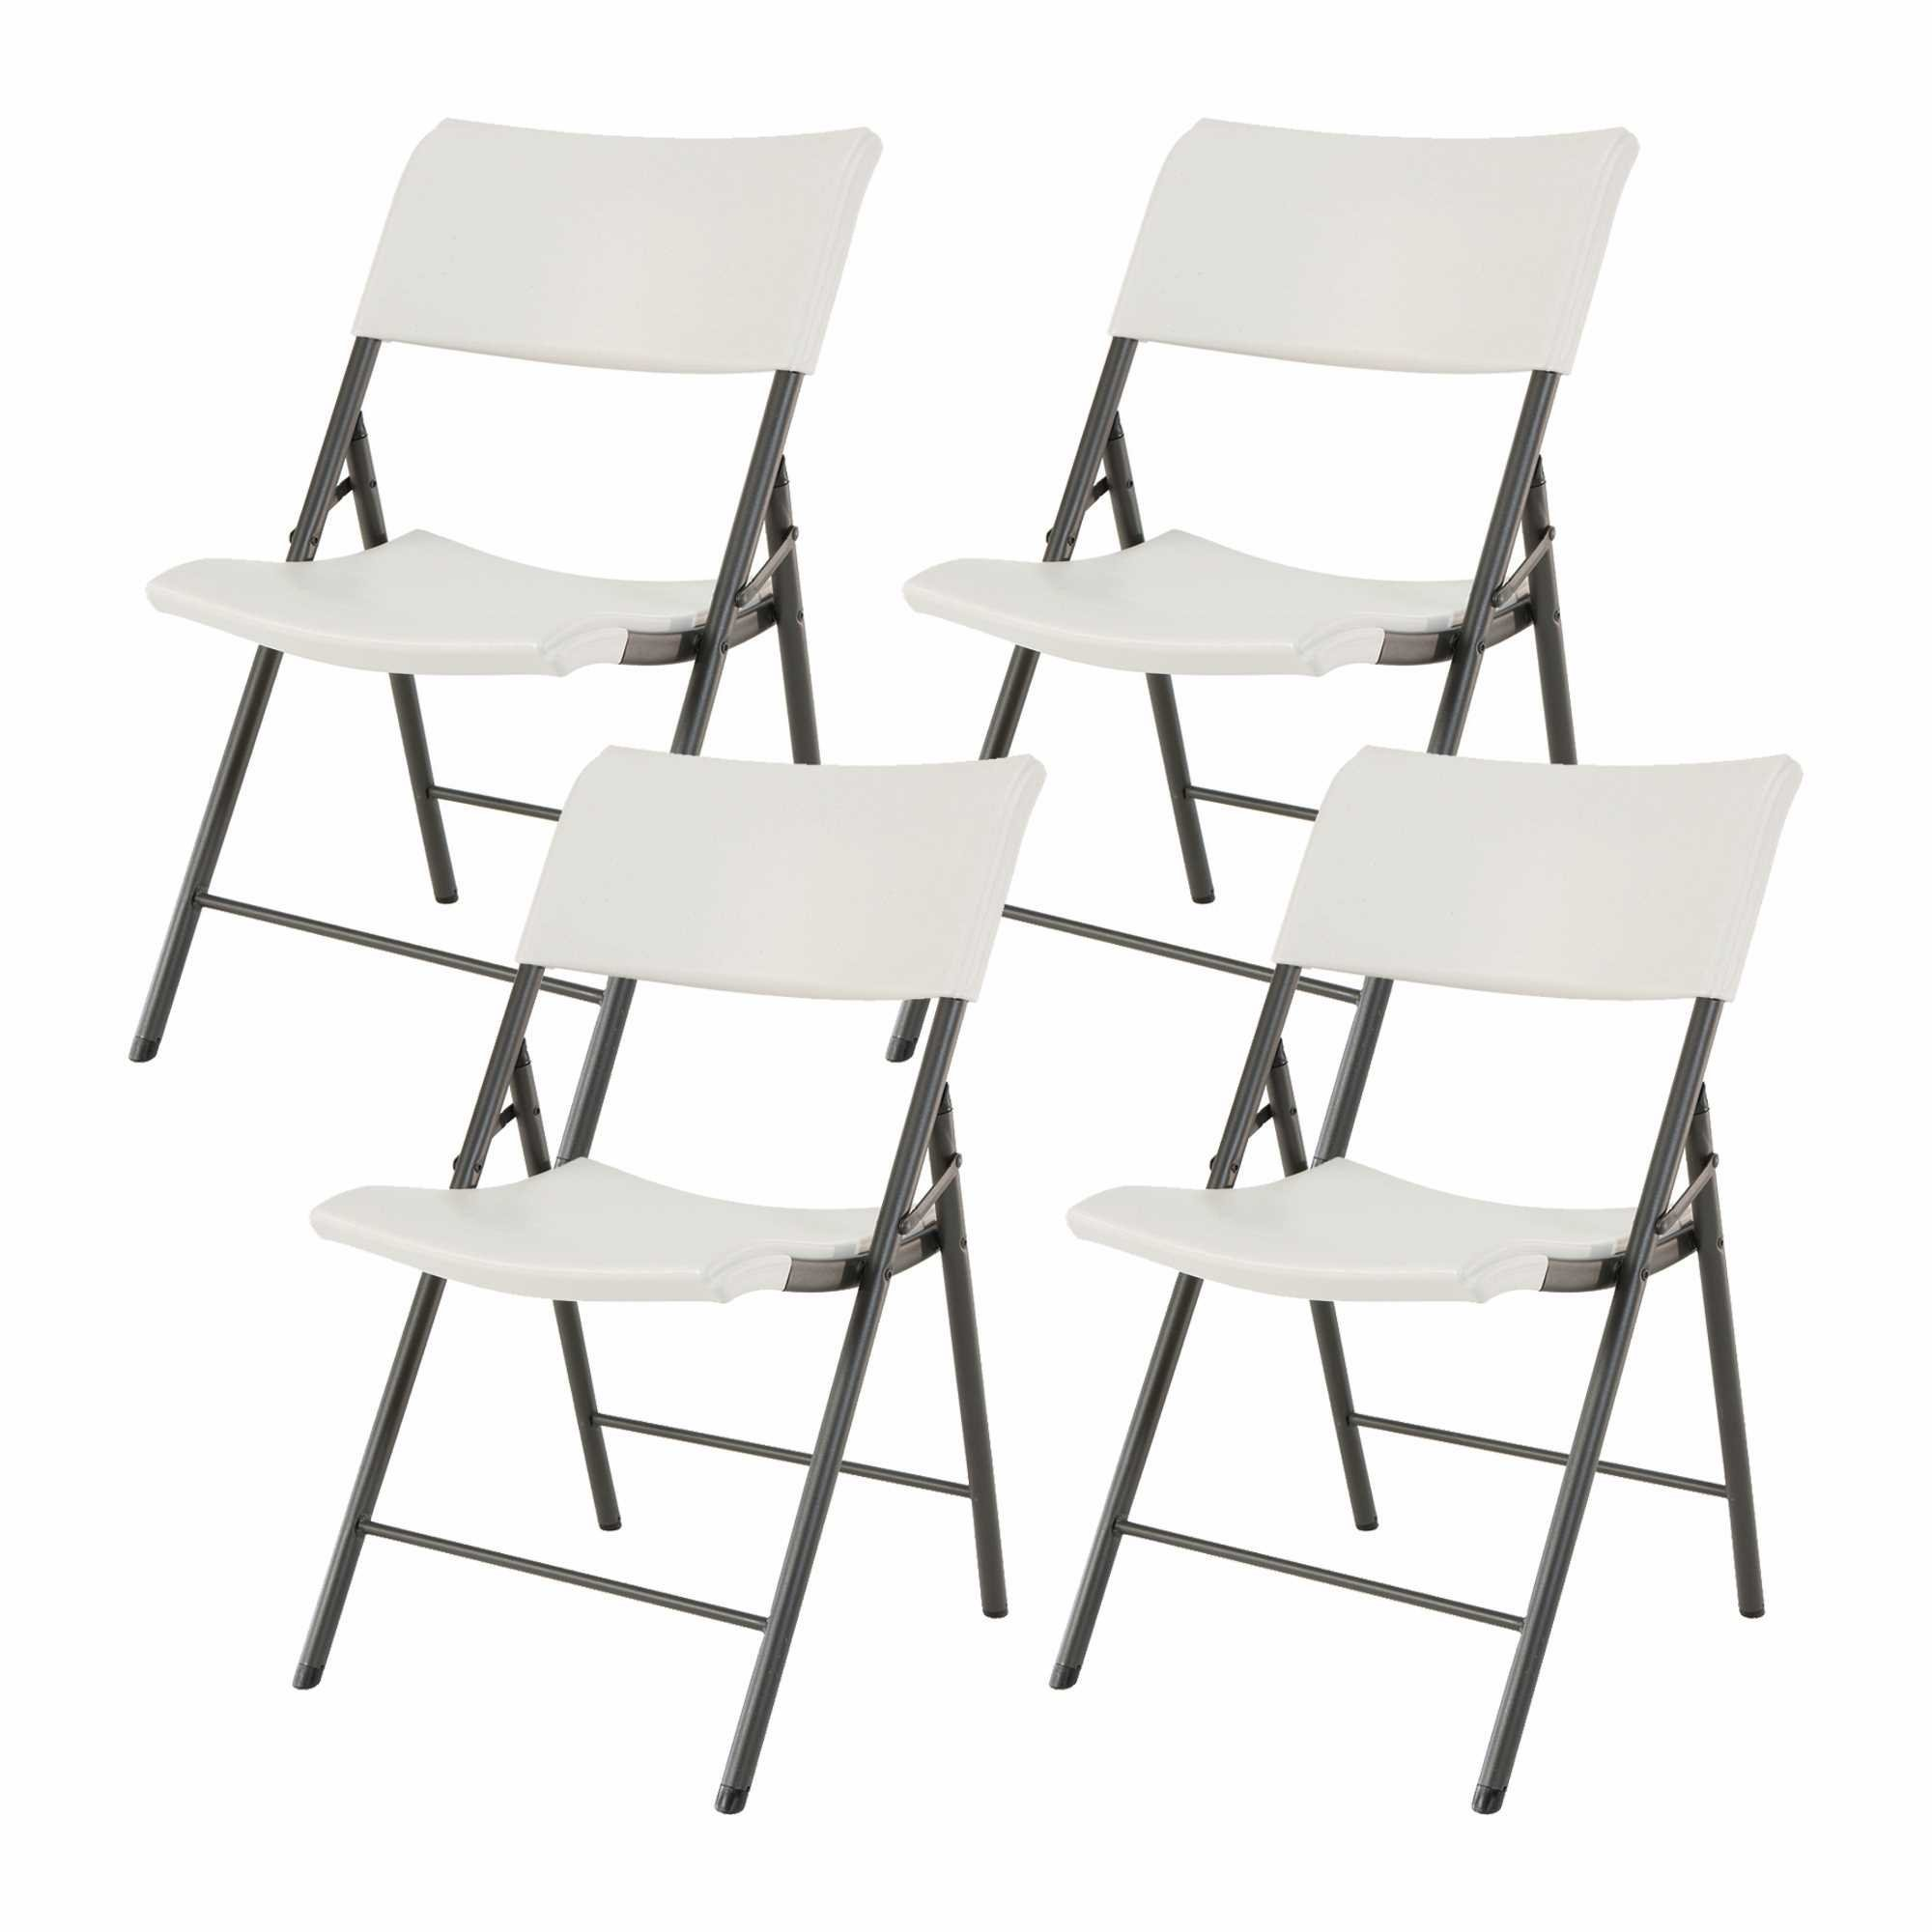 Lifetime Light Commercial Contemporary Plastic Folding Chair, Almond (4 Pack) by Lifetime